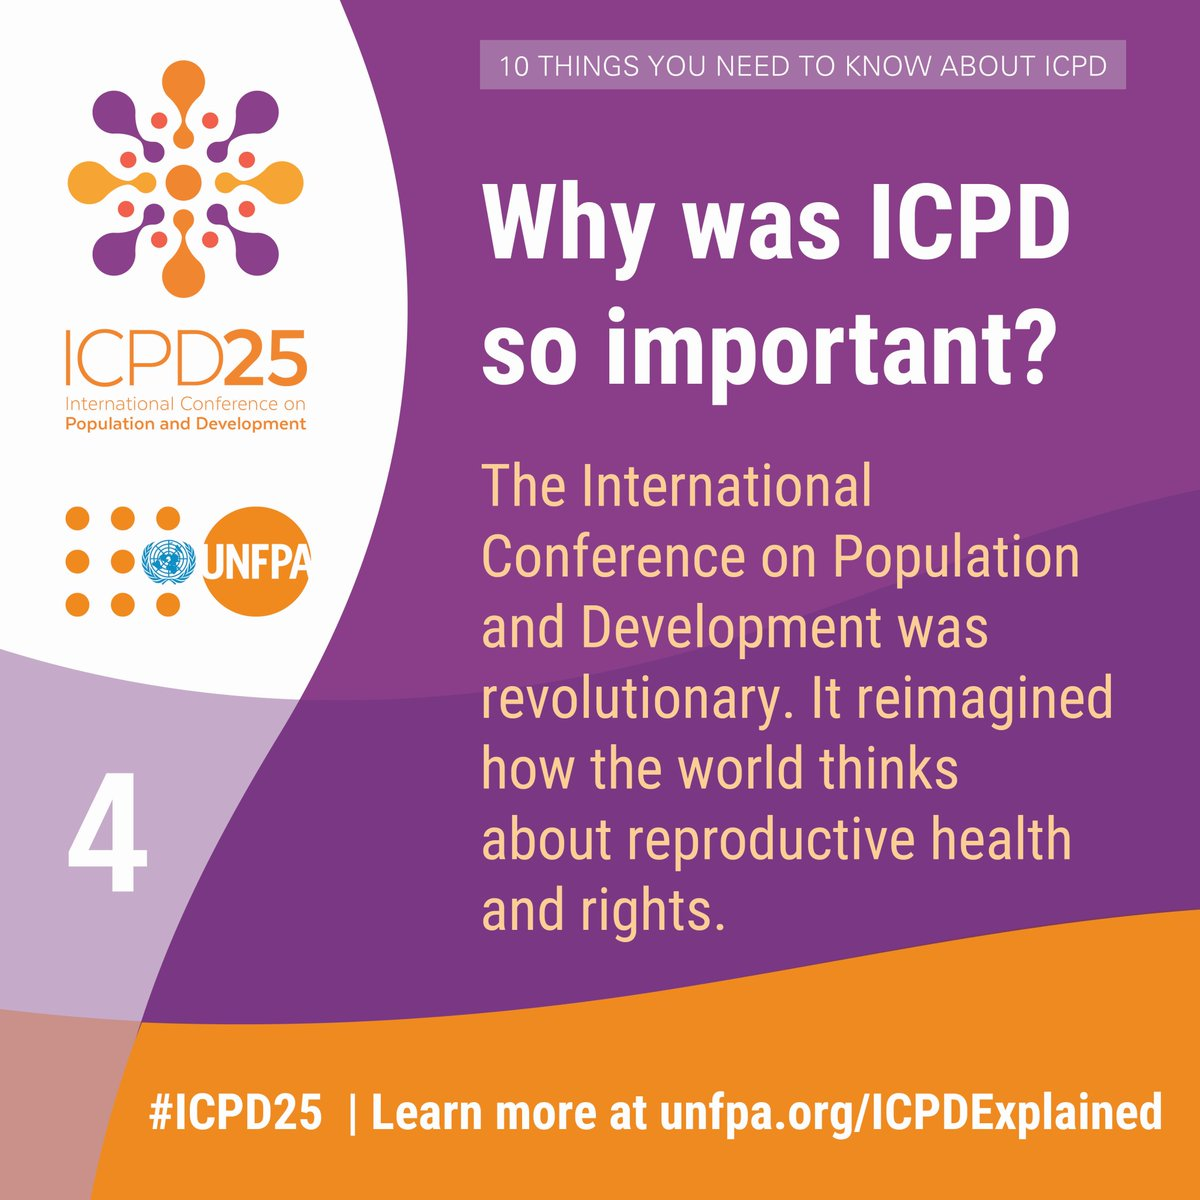 25 years ago, the world agreed that #reprohealth and #reprorights are key to sustainable development.  Let @UNFPA explain why this still matters today: http://unfpa.org/ICPDExplained  #ICPD25 #CPD52